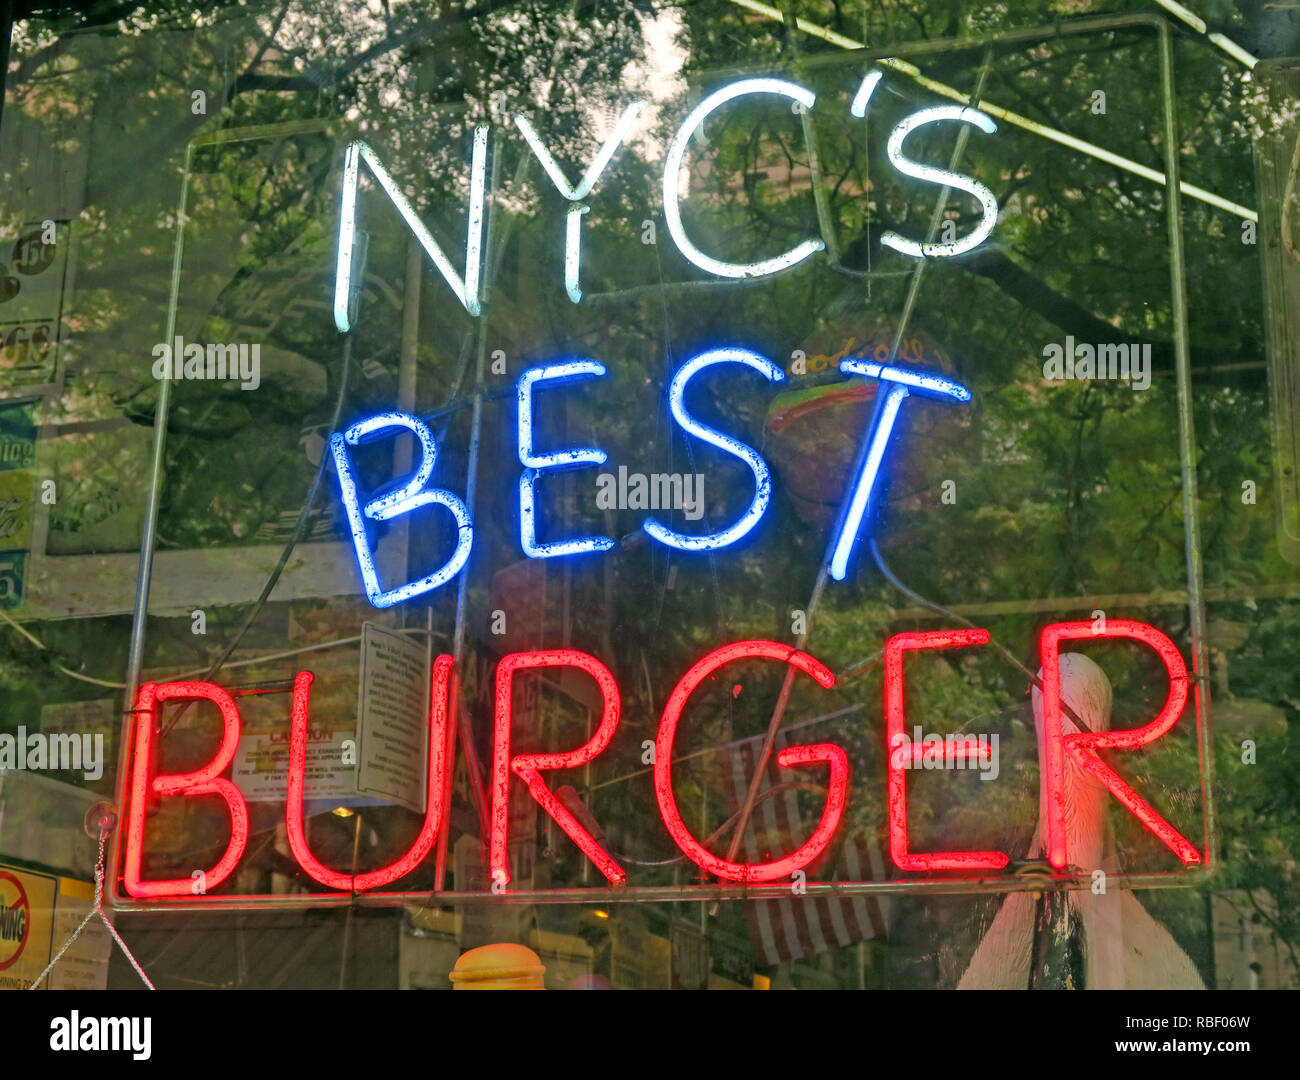 New York Citys Best Burger neon sign, NYCs Best Burger, East Village, Manhattan,  NY, USA - Stock Image